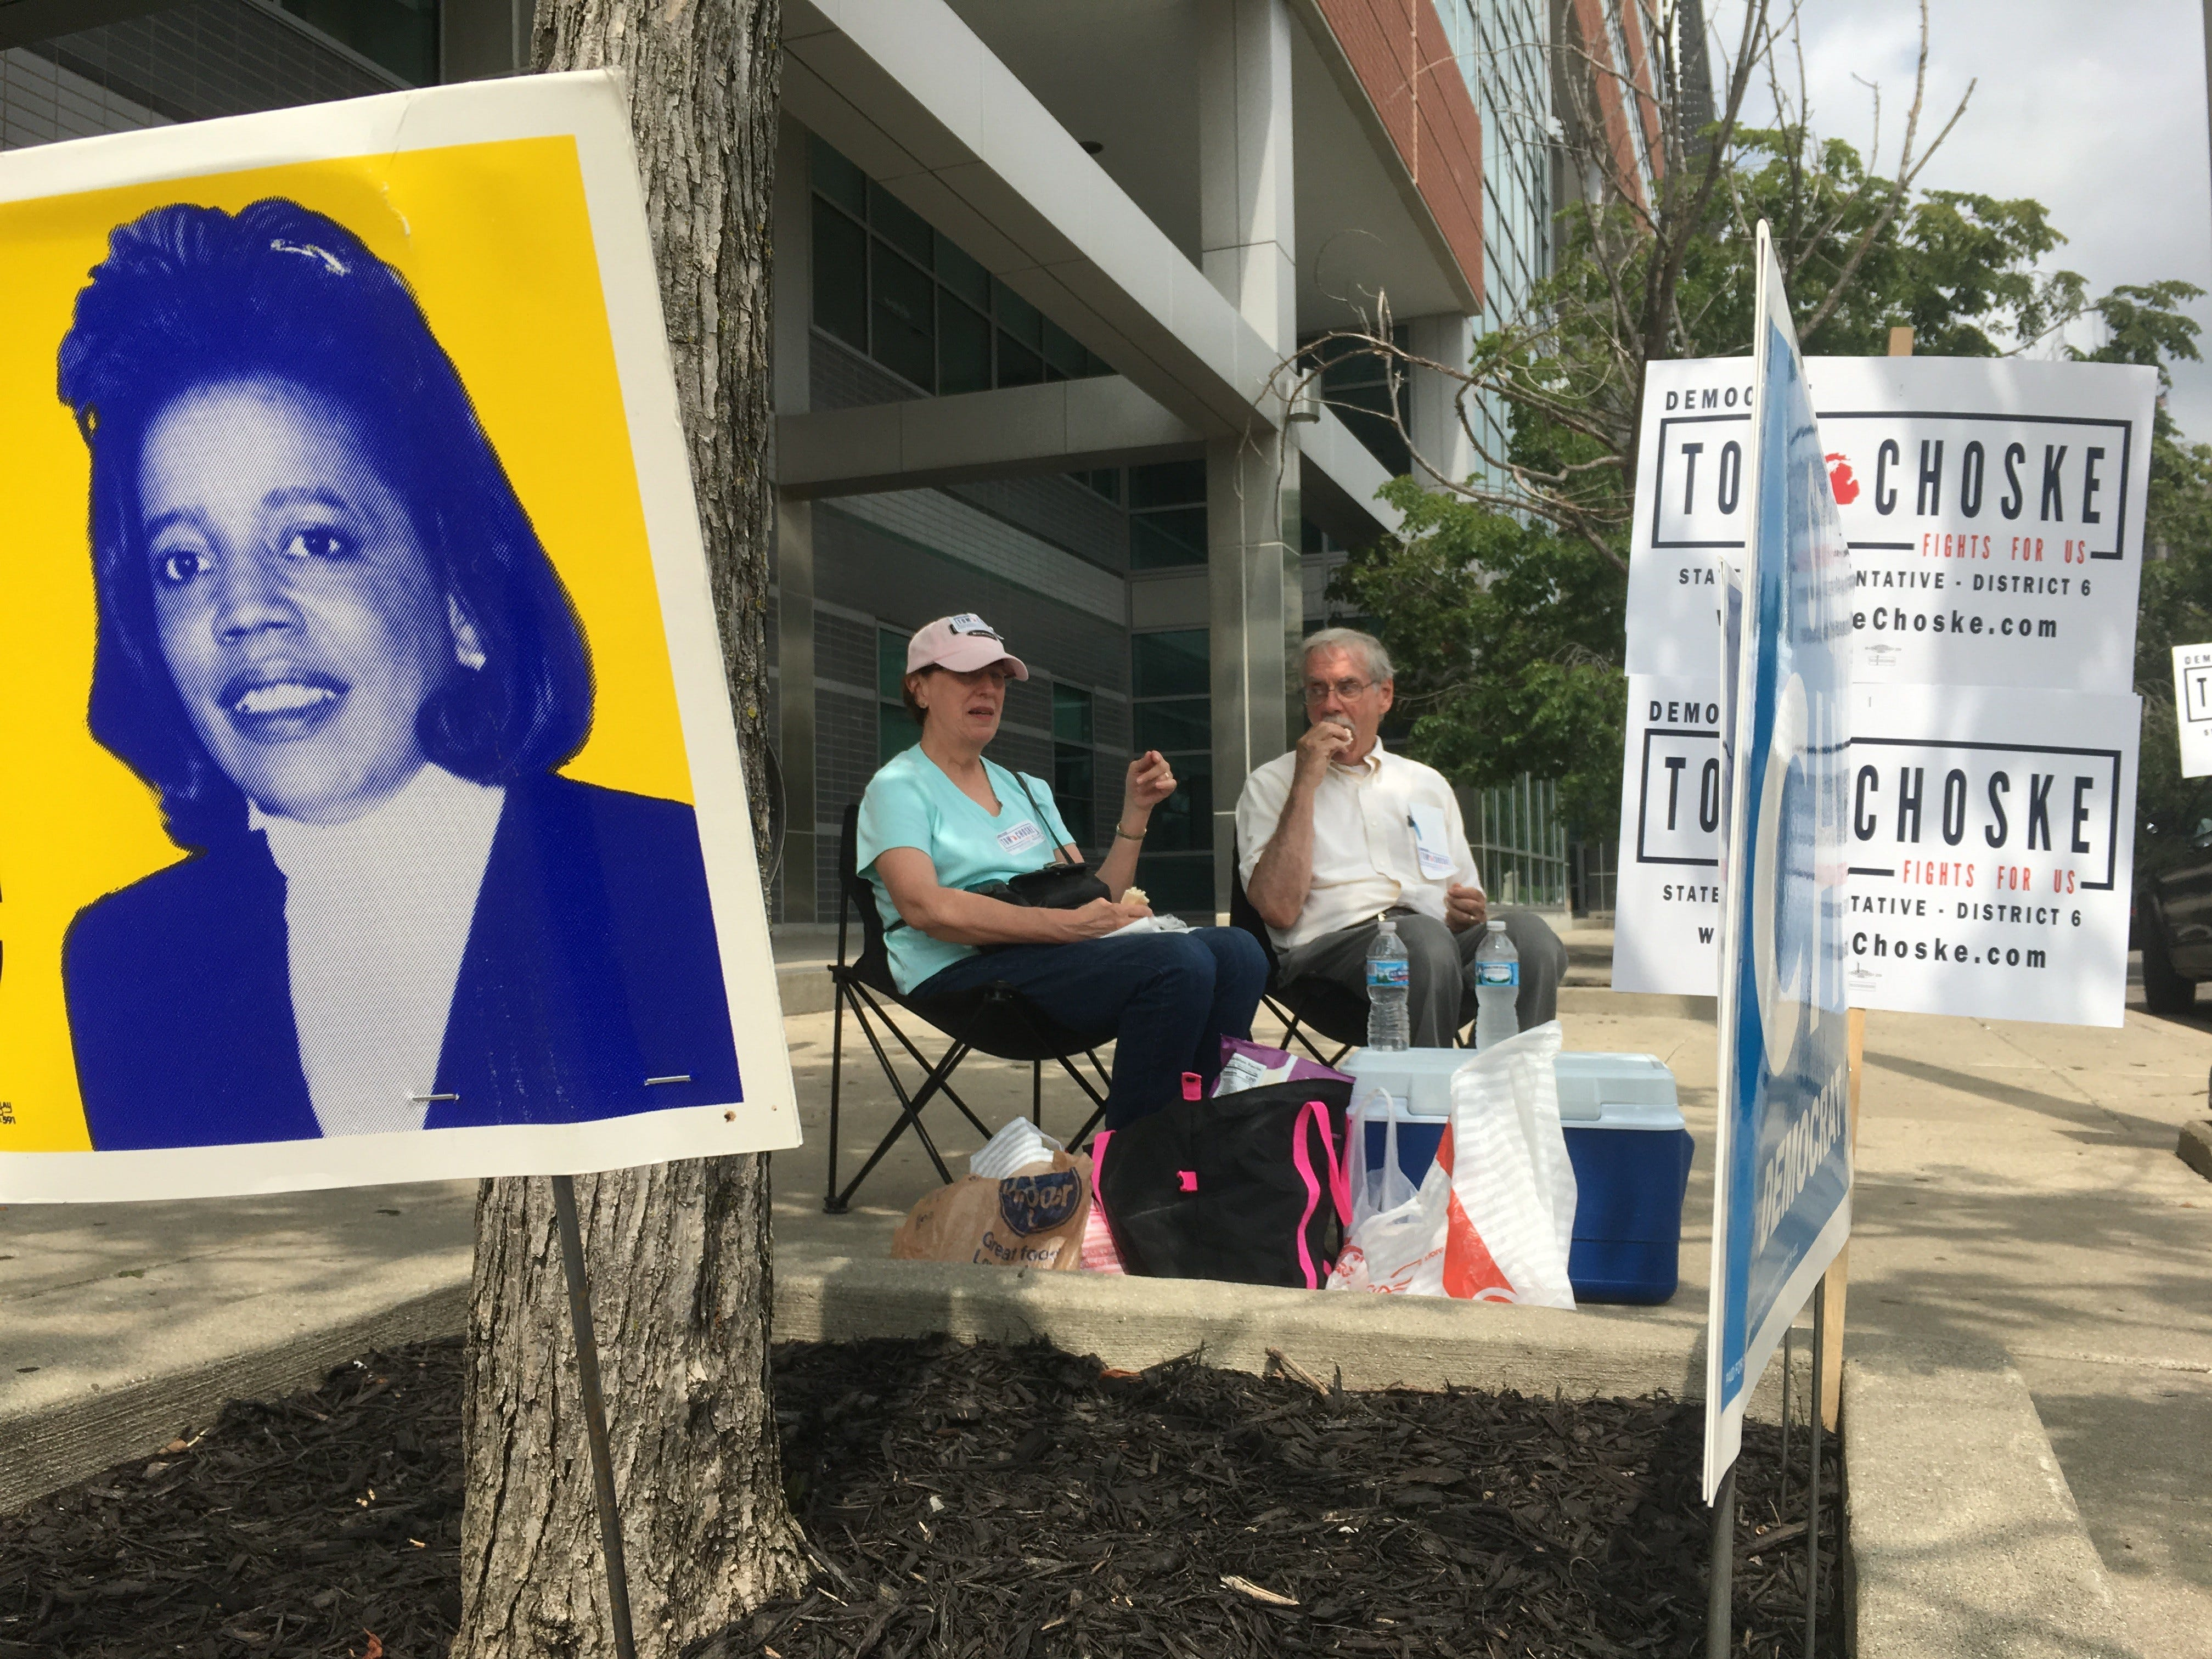 """Evelyn Choske, 67, of Dearborn picnics with her husband Frank Choske, 70, Tuesday, Aug. 7, 2018, outside Cass Tech. High School as they stump for their Son Tom Choske who is running for State Representative in 6th District. """"It's a crowded field"""" said his mom """"it's going to be tight."""""""